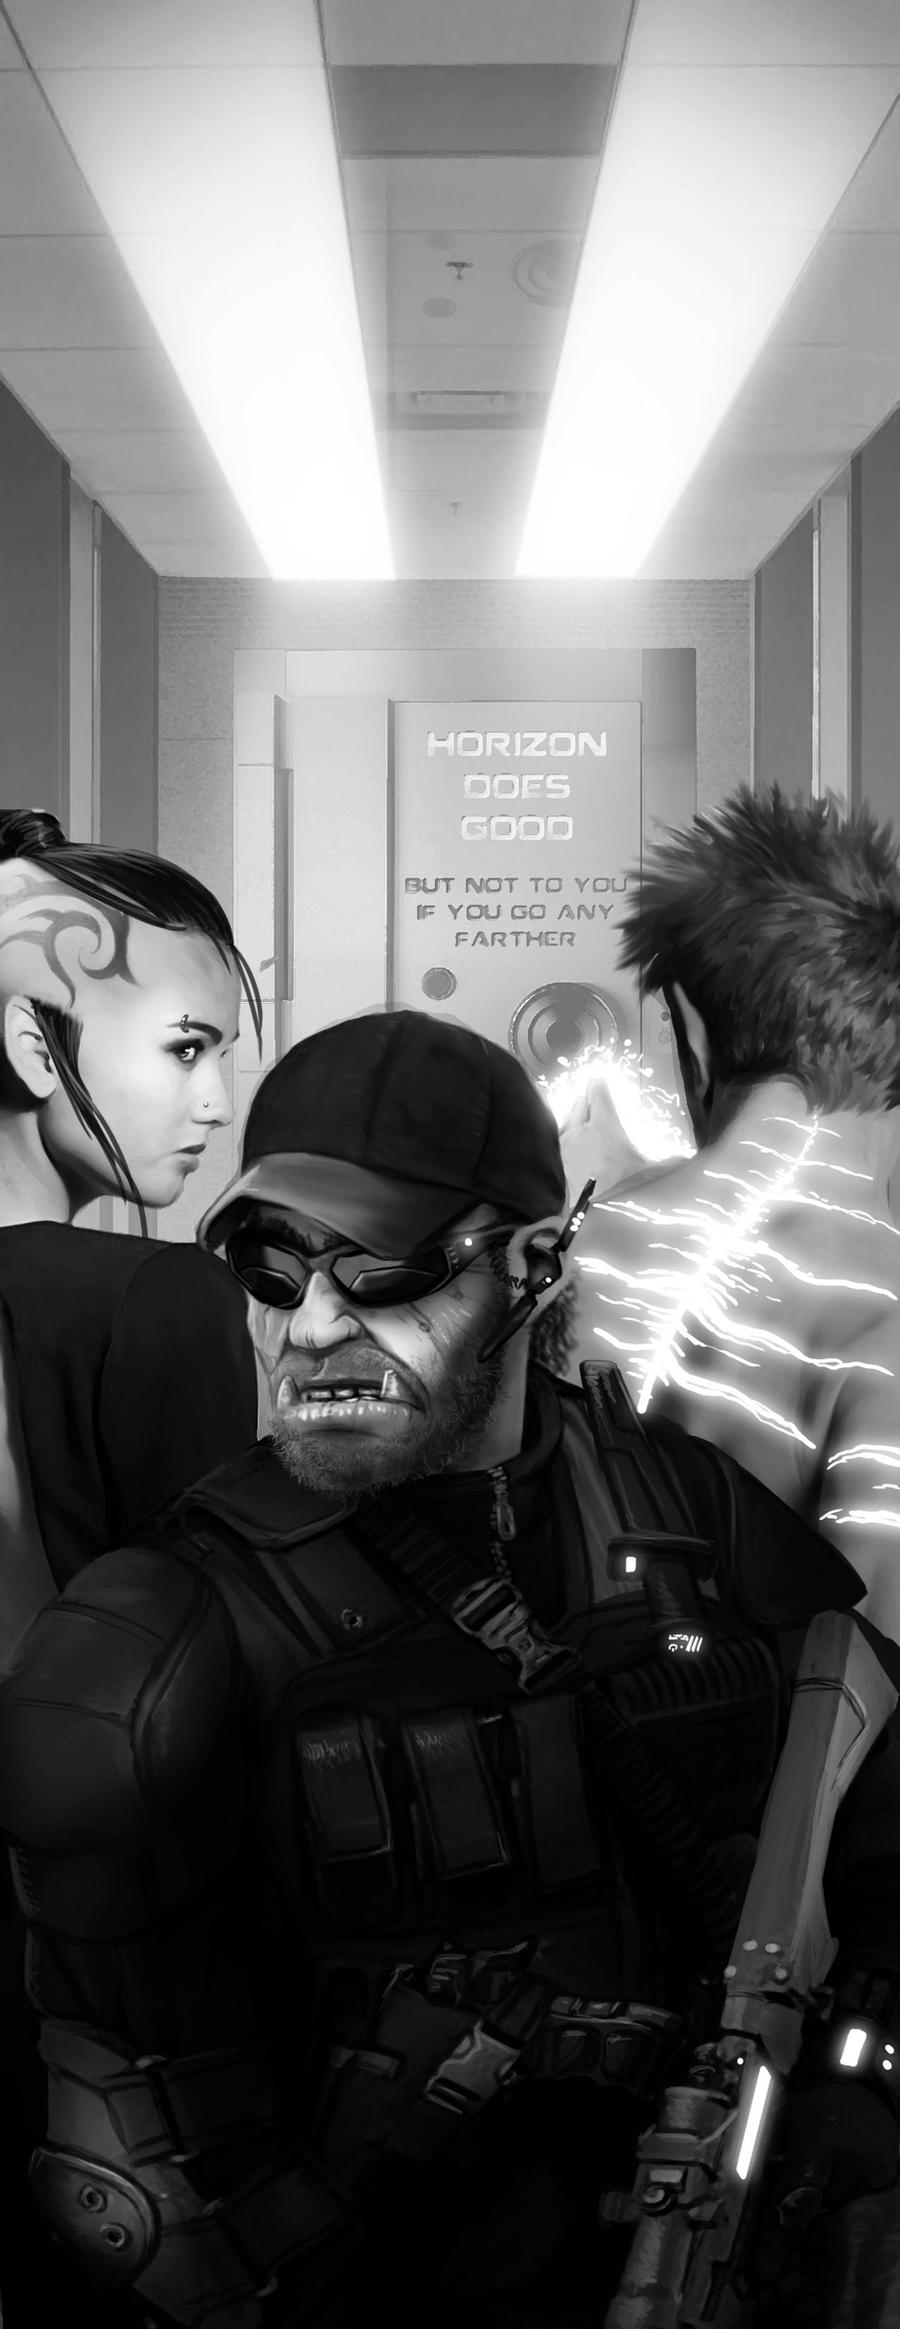 Shadowrun Horizon Artwork by raben-aas